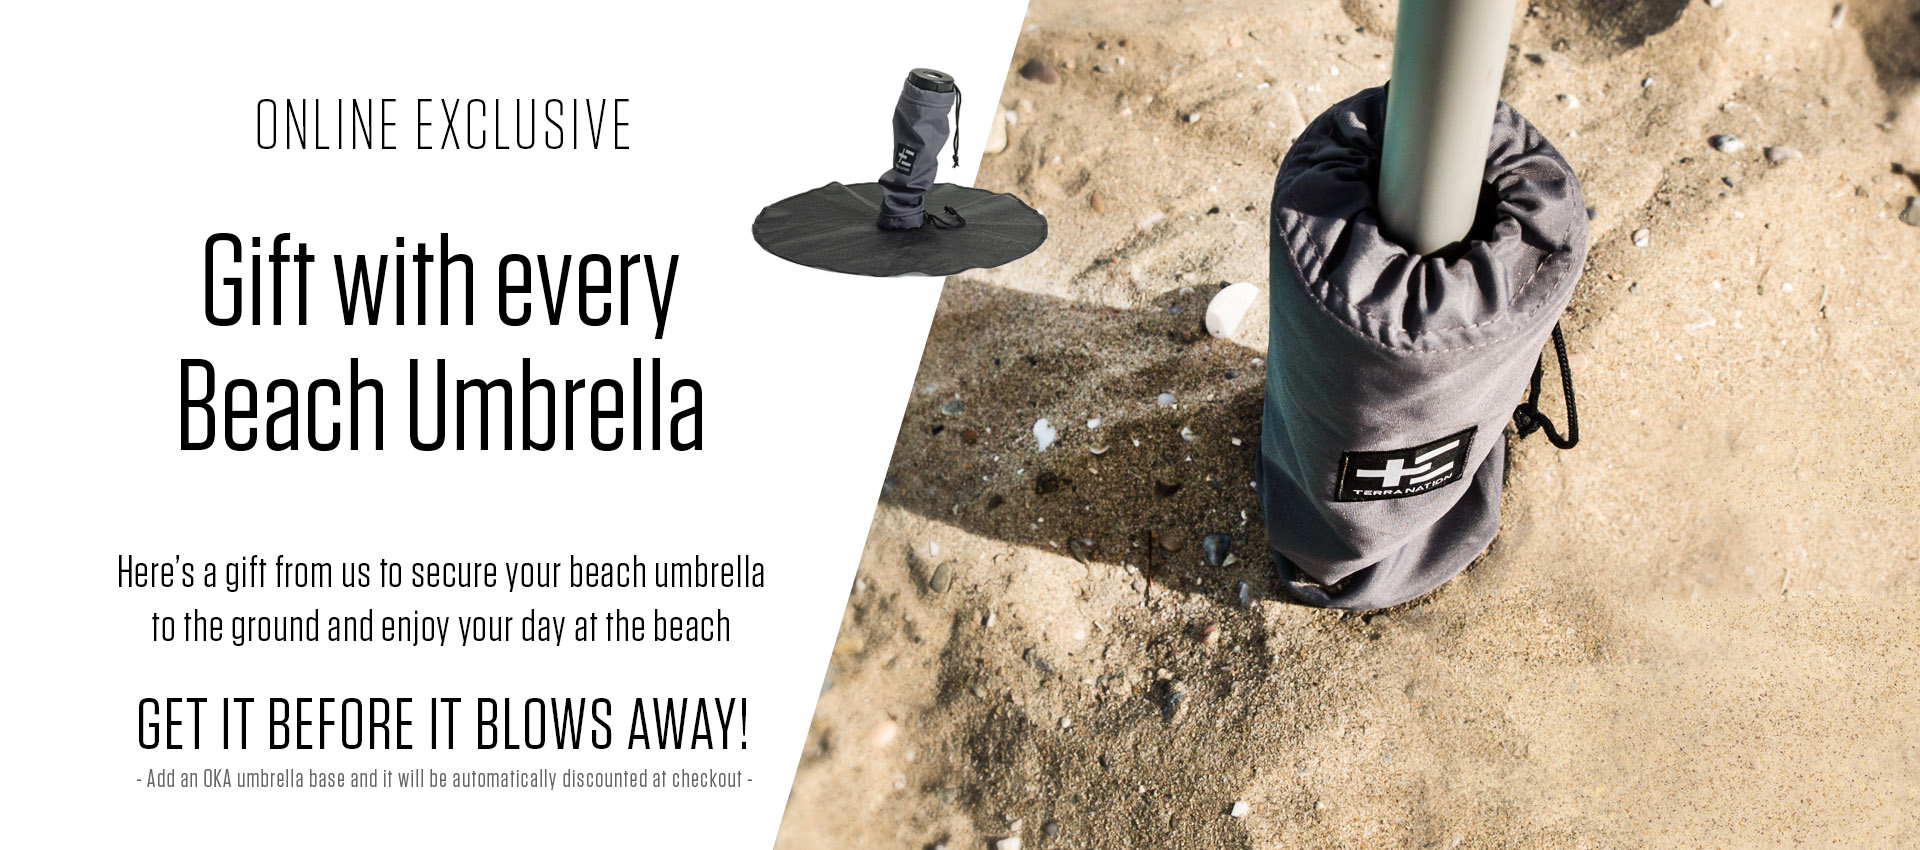 With every Beach Umbrella get 1 OKA beach base free